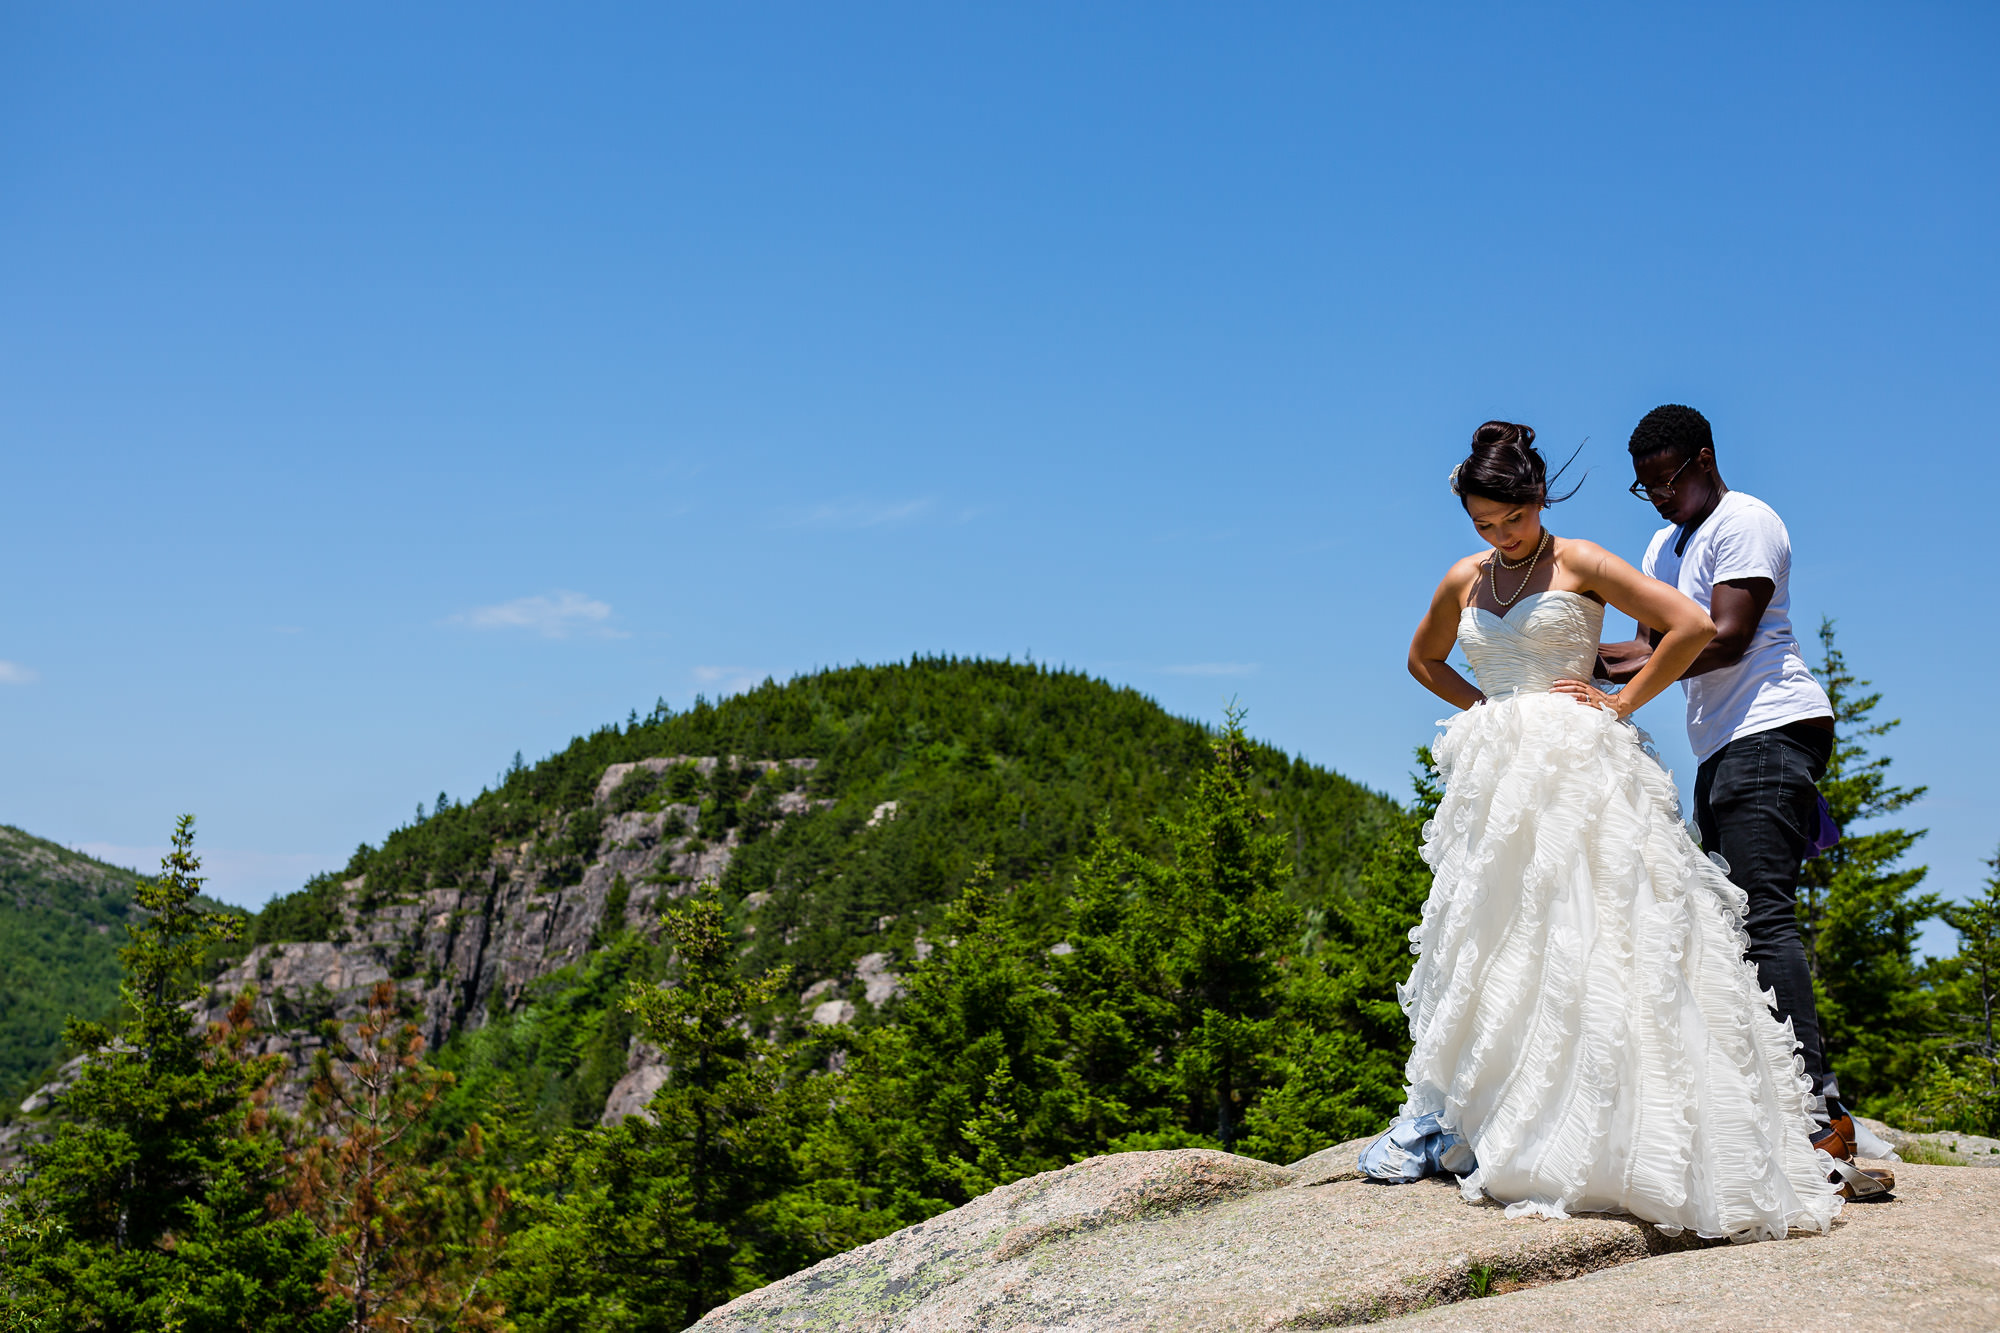 Keltic Rose Photography - Wedding and People Photographer Sony cybershot downloading pictures